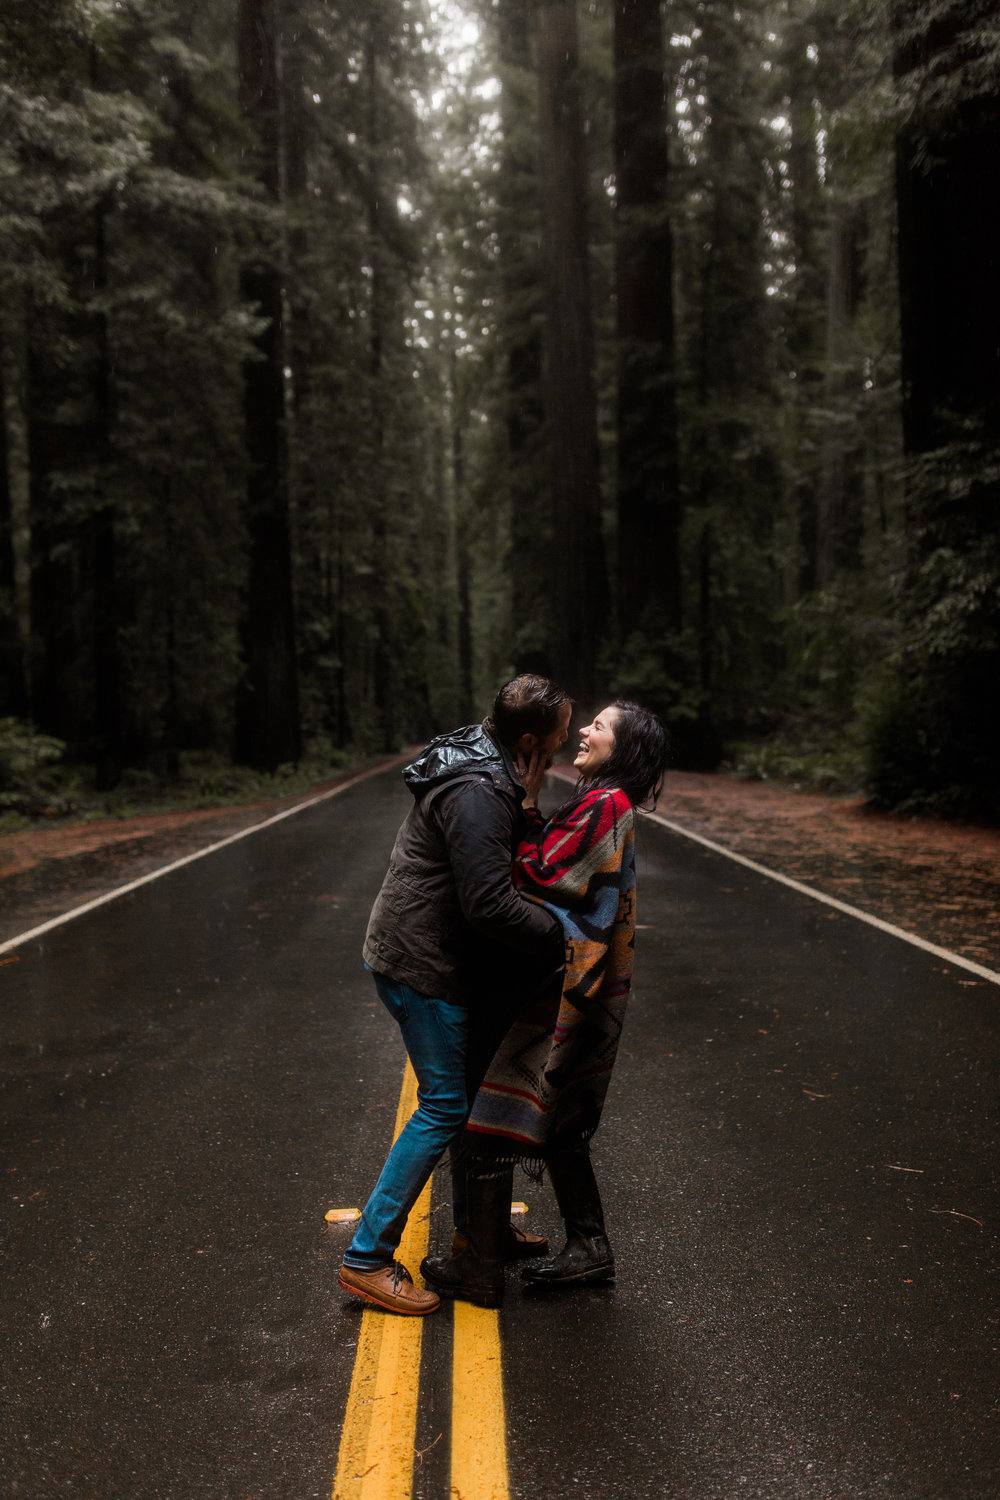 nicole-daacke-photography-redwoods-national-park-forest-rainy-foggy-adventure-engagement-session-humboldt-county-old-growth-redwood-tree-elopement-intimate-wedding-photographer-29.jpg